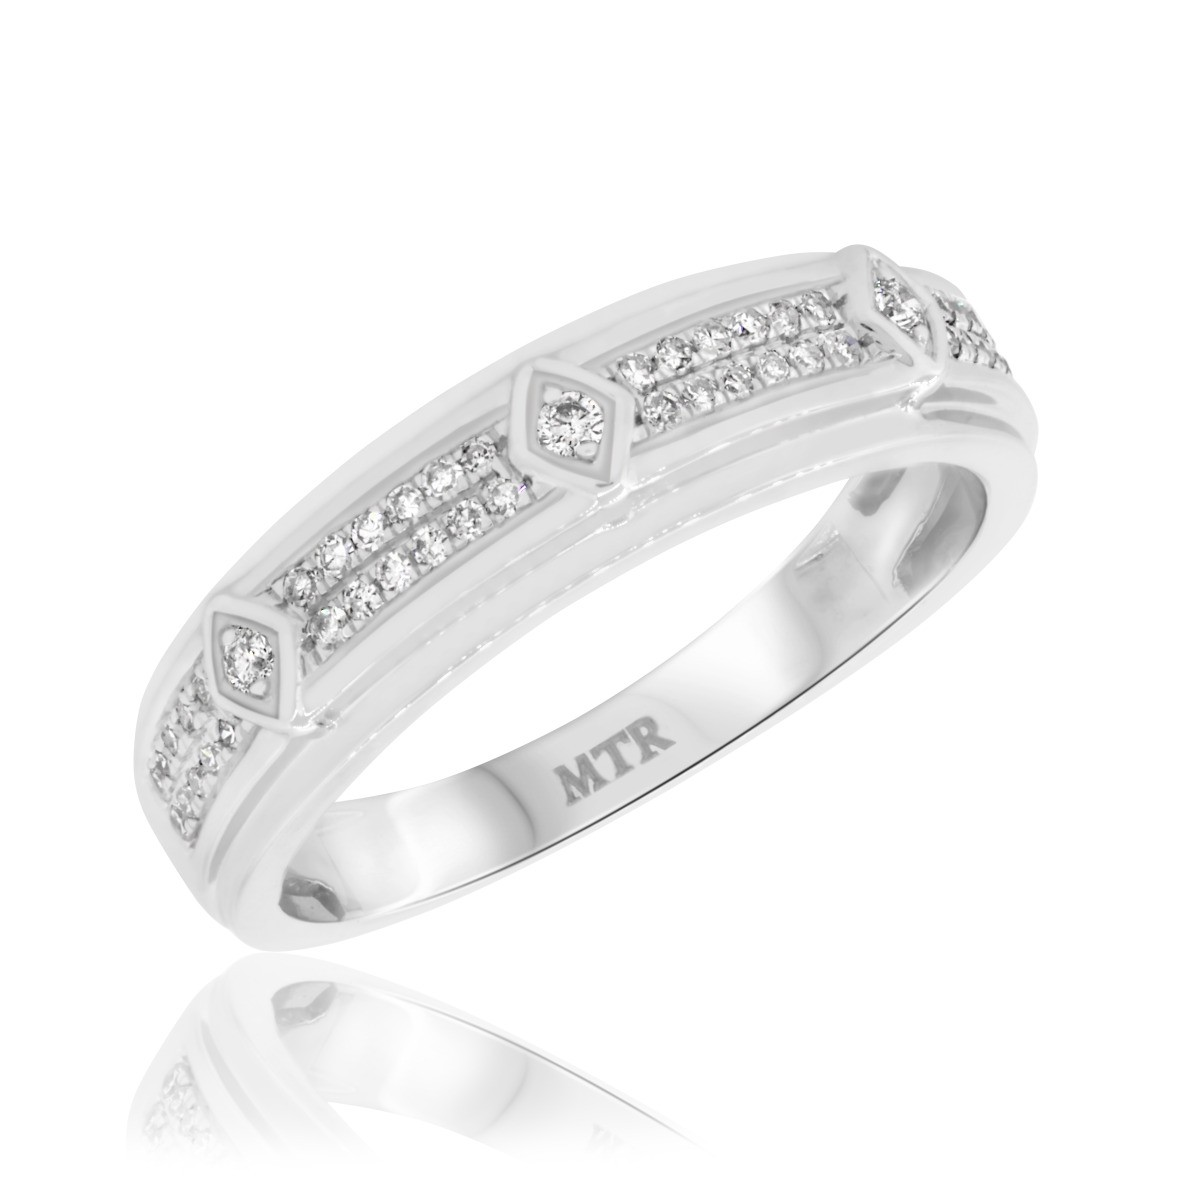 1/4 CT. T.W. Diamond Mens Wedding Band  14K White Gold